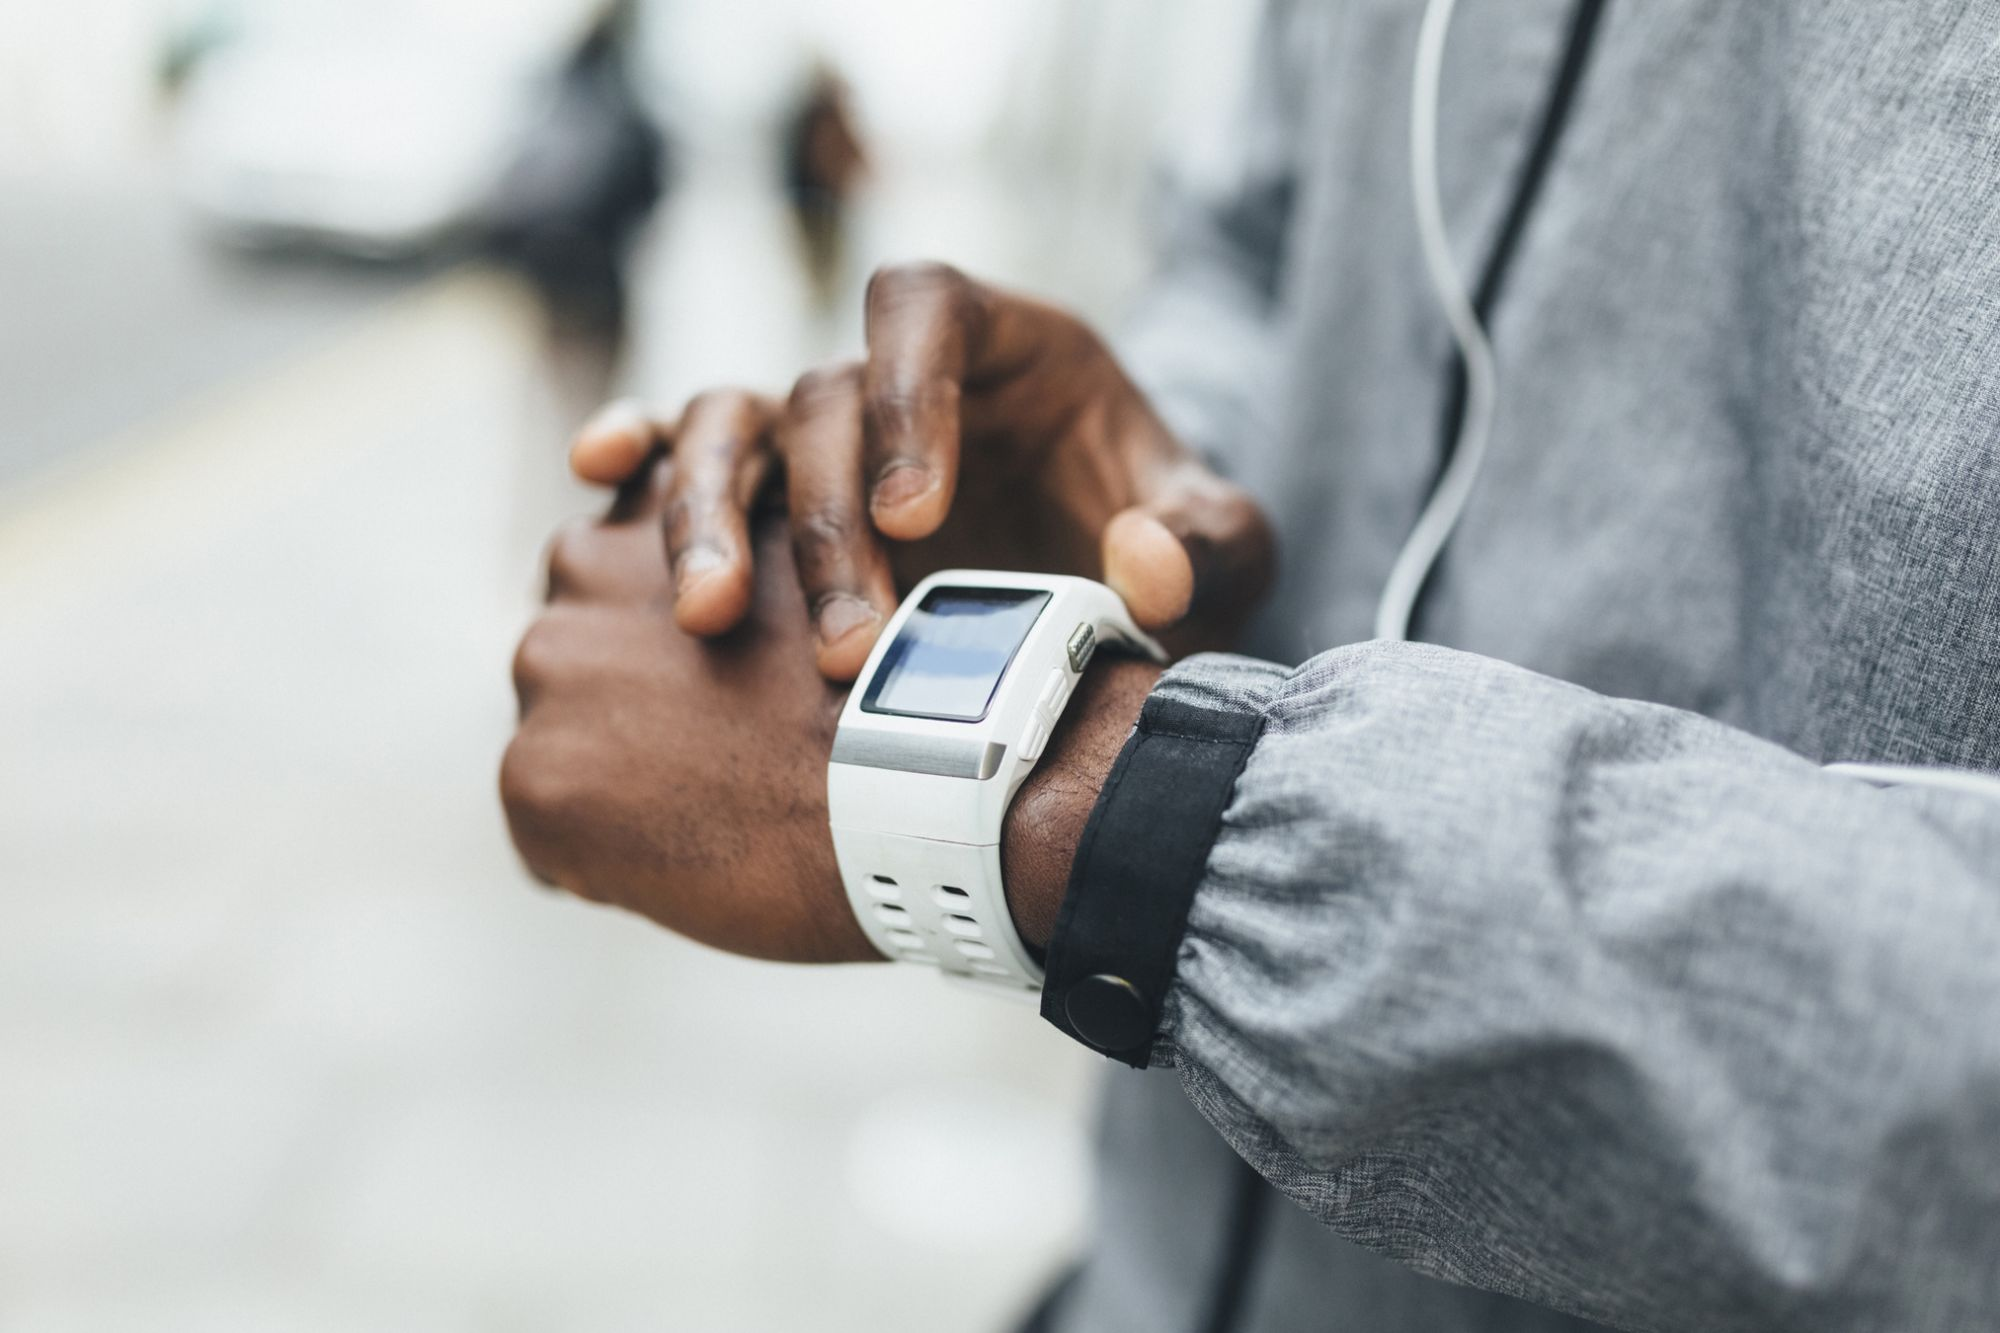 3 Ways Wearables Can Help Entrepreneurs Supercharge Their Health, Energy and Productivity